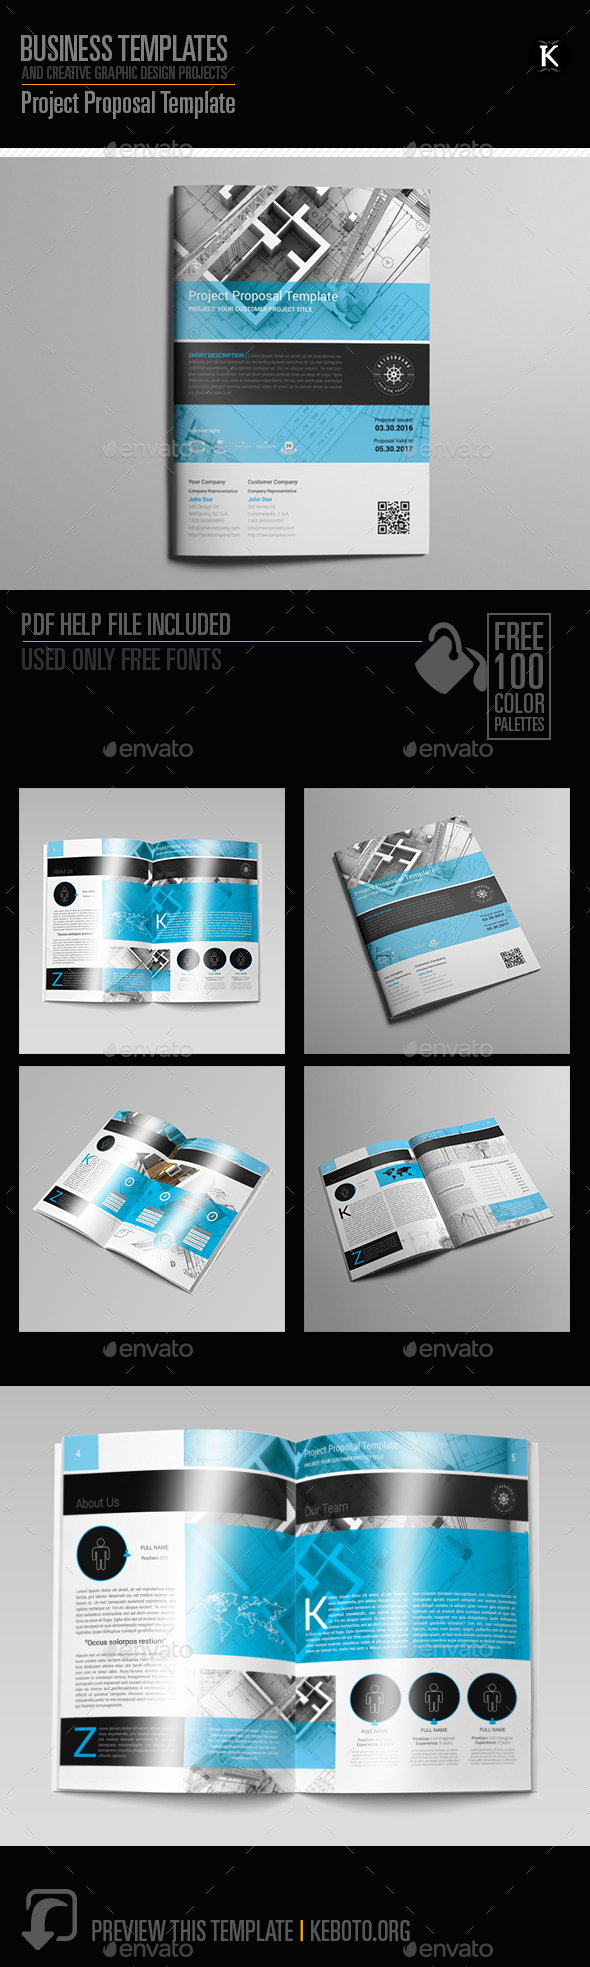 project proposal graphic design